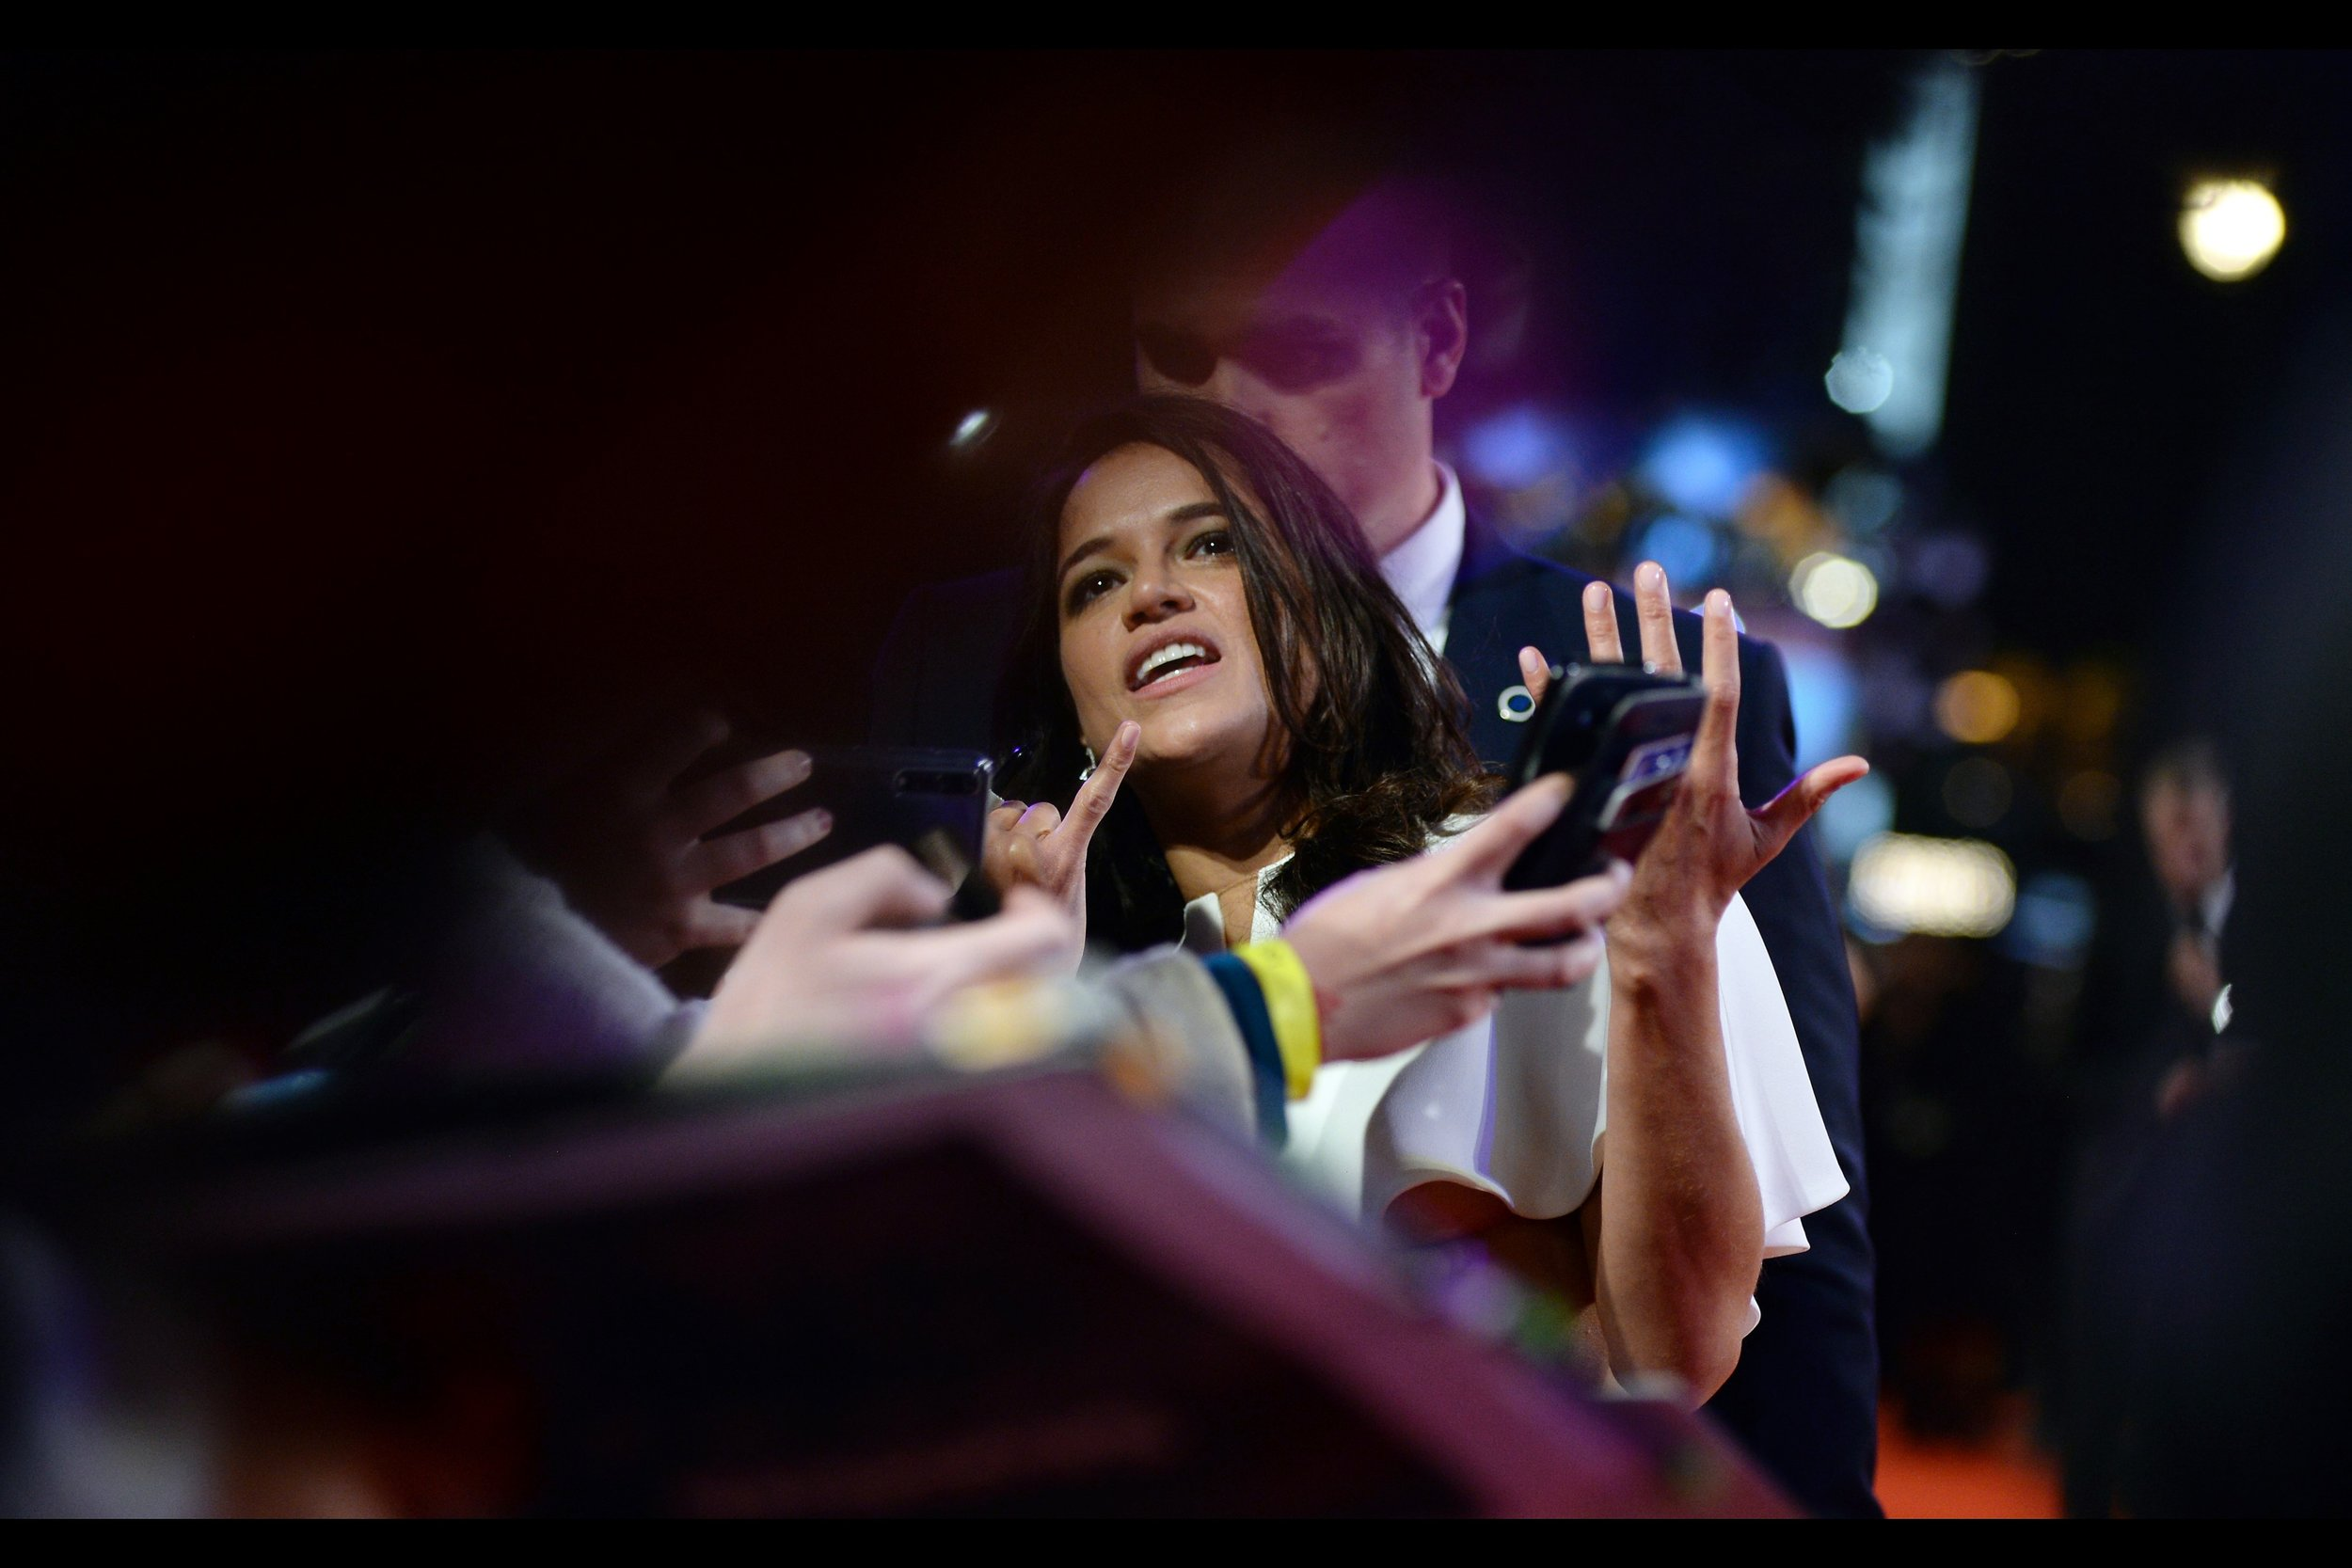 """""""I'm sorry I lack the third arm your requested gang sign appears to require, but I can endorse your twitter feed or something if you want?""""  - Michelle Rodriguez probably signed and interacted more than anyone from the cast (with Hans Zimmer and Daniel Kaluuya close behind)."""